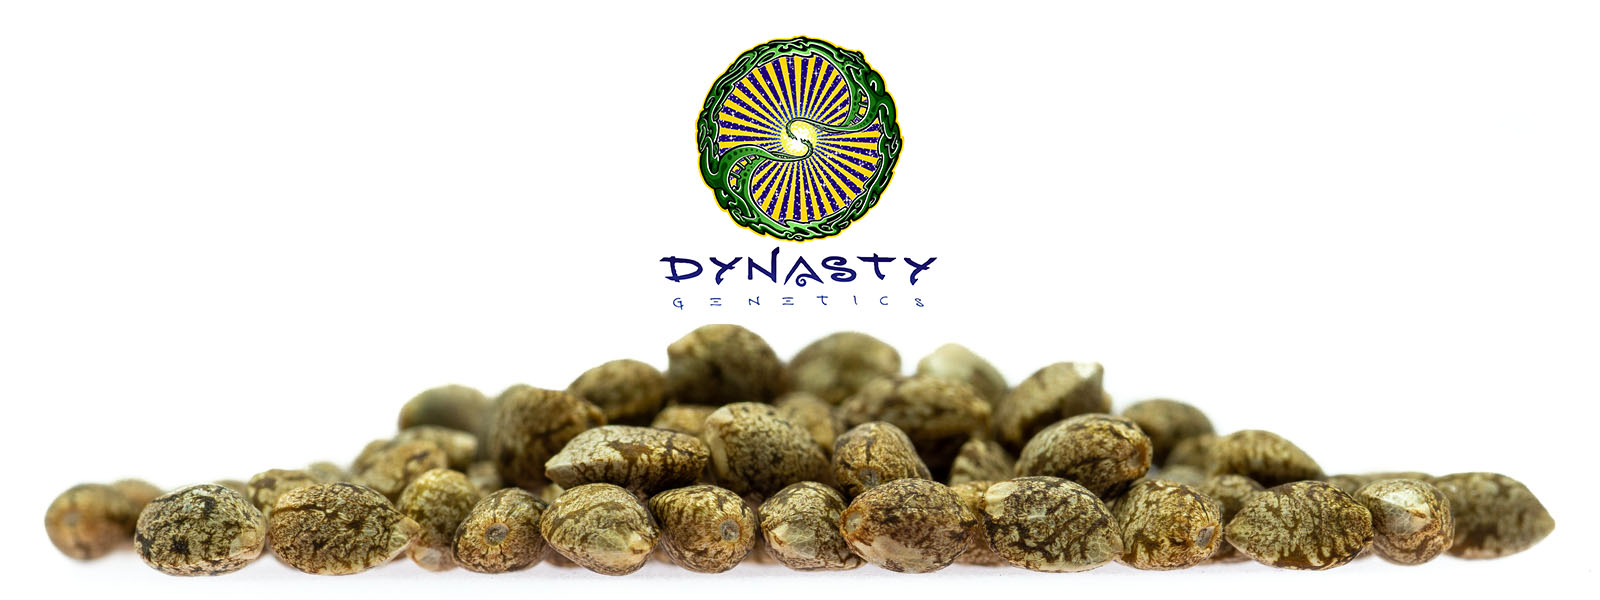 Dynasty genetics conserves and works with elite strains